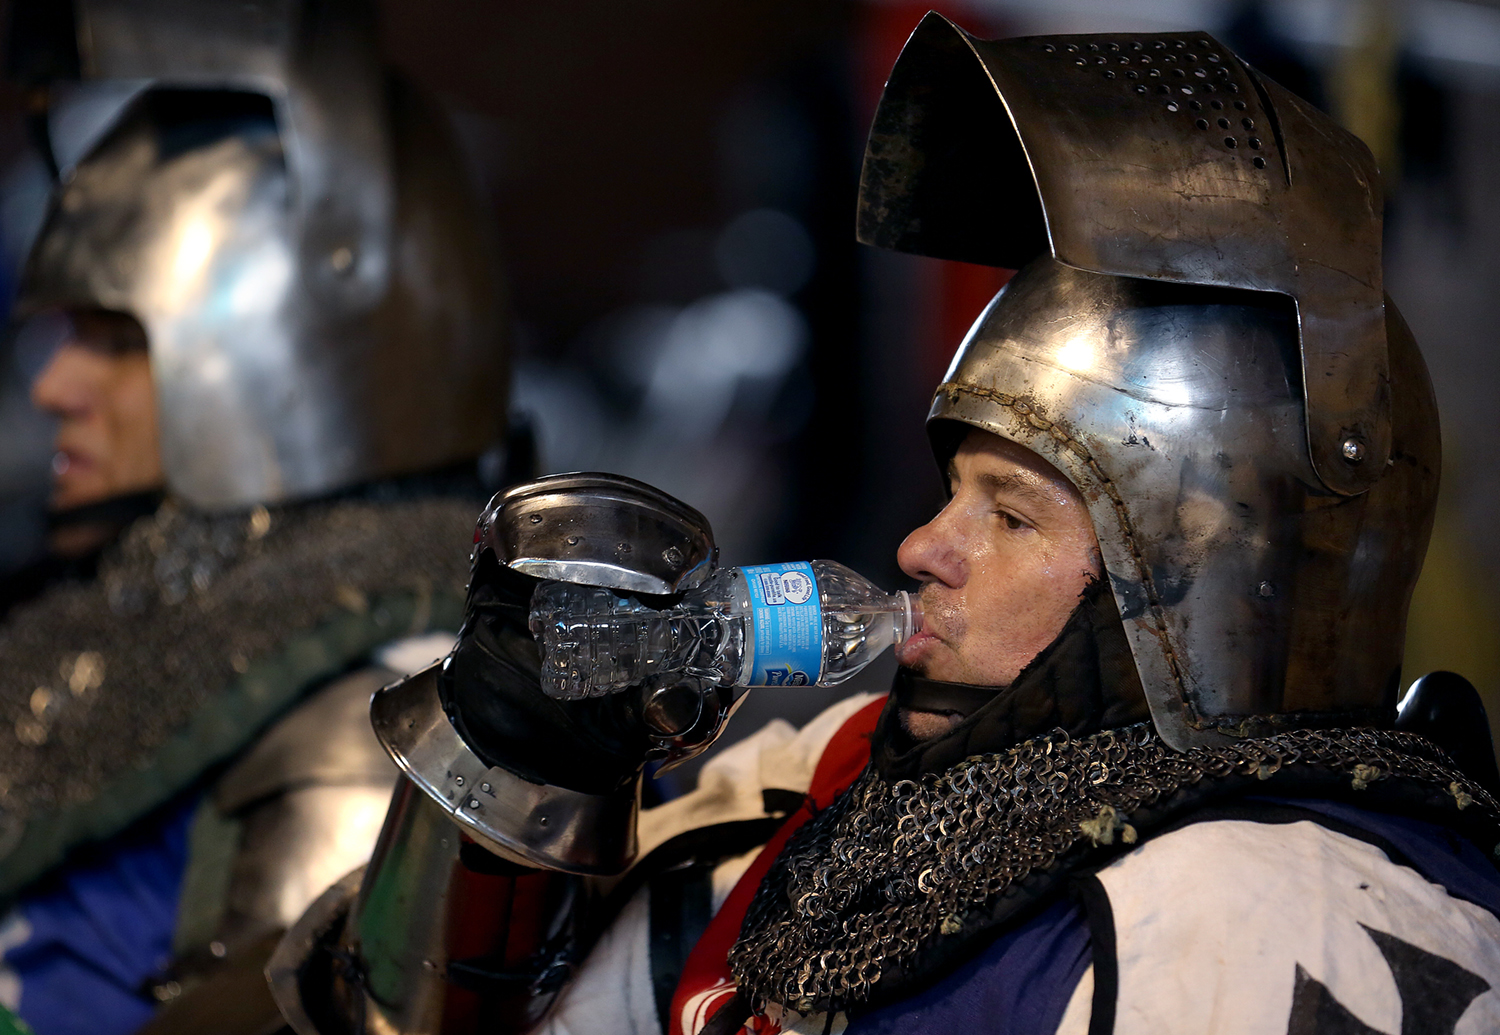 Club Ursus member Steven Schroeder of San Jose, CA takes a water break between bouts Saturday. The Medieval battle competition Battle of the Nations International Tournament of Chivalry took place at the Livestock Center on the Illinois State Fairgrounds in Springfield on Saturday, Oct. 18, 2014. Armored swordfighters competed in the full contact sport individually and as teams from around the world for medals.  David Spencer/The State Journal-Register